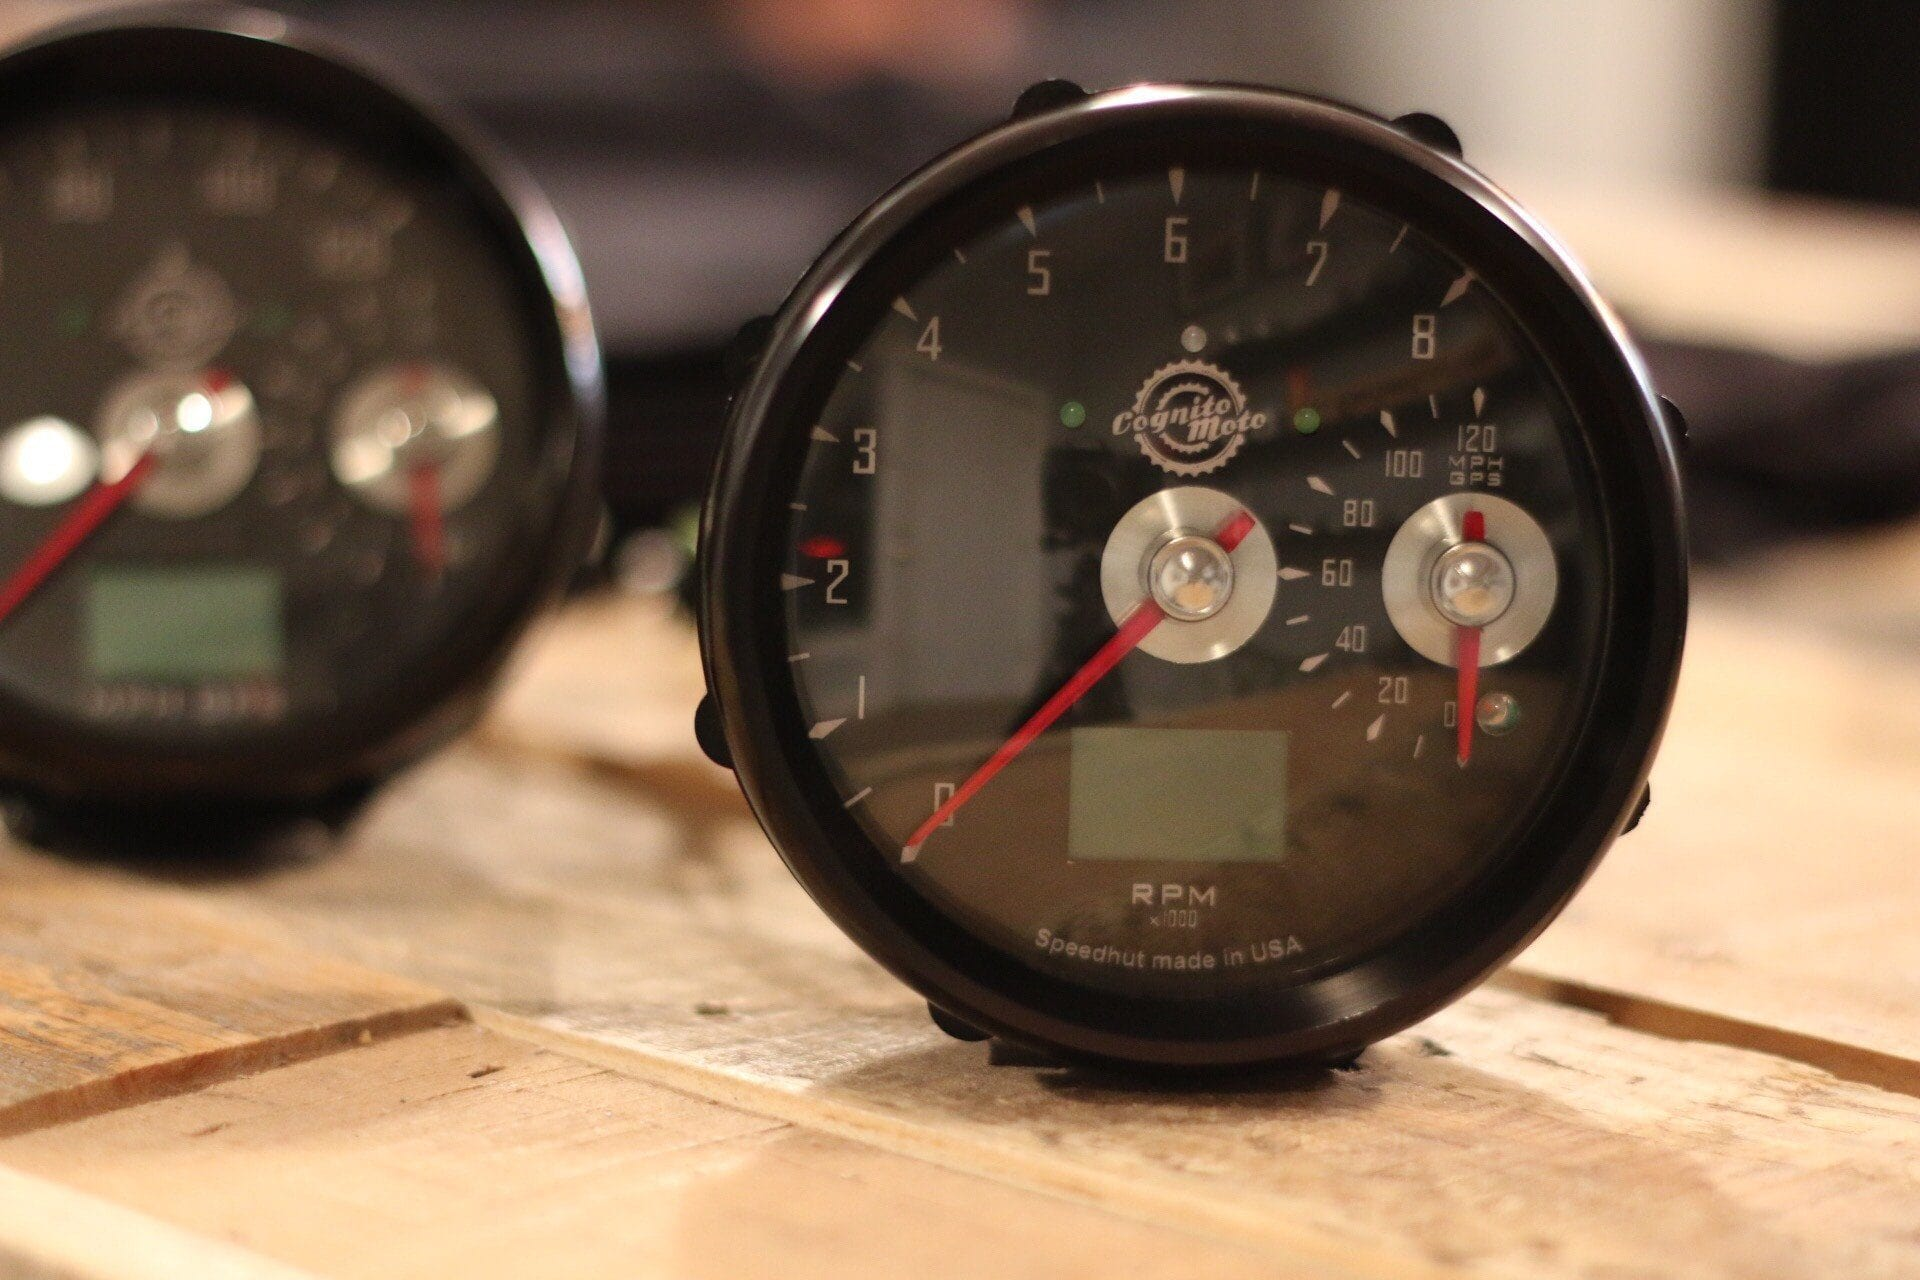 Gauges Cognito Moto Tacho Connecting Wiring Diagram For Yamaha R1 04 06 Gps Speedo And Large Tach